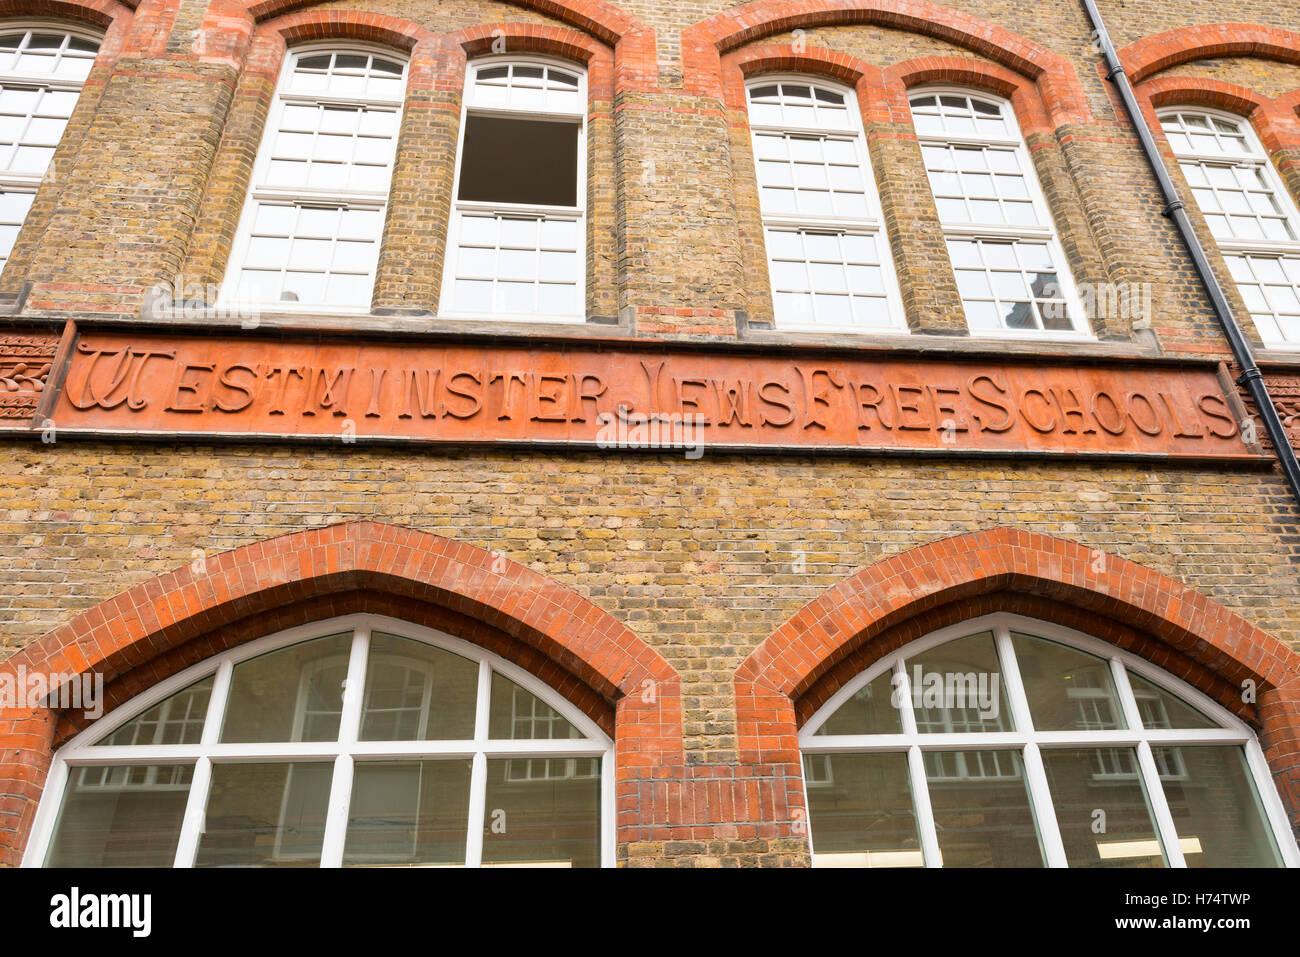 West End site of the Westminster Jews Free School est 1811 as one of the first free schools in London finally closed - Stock Image